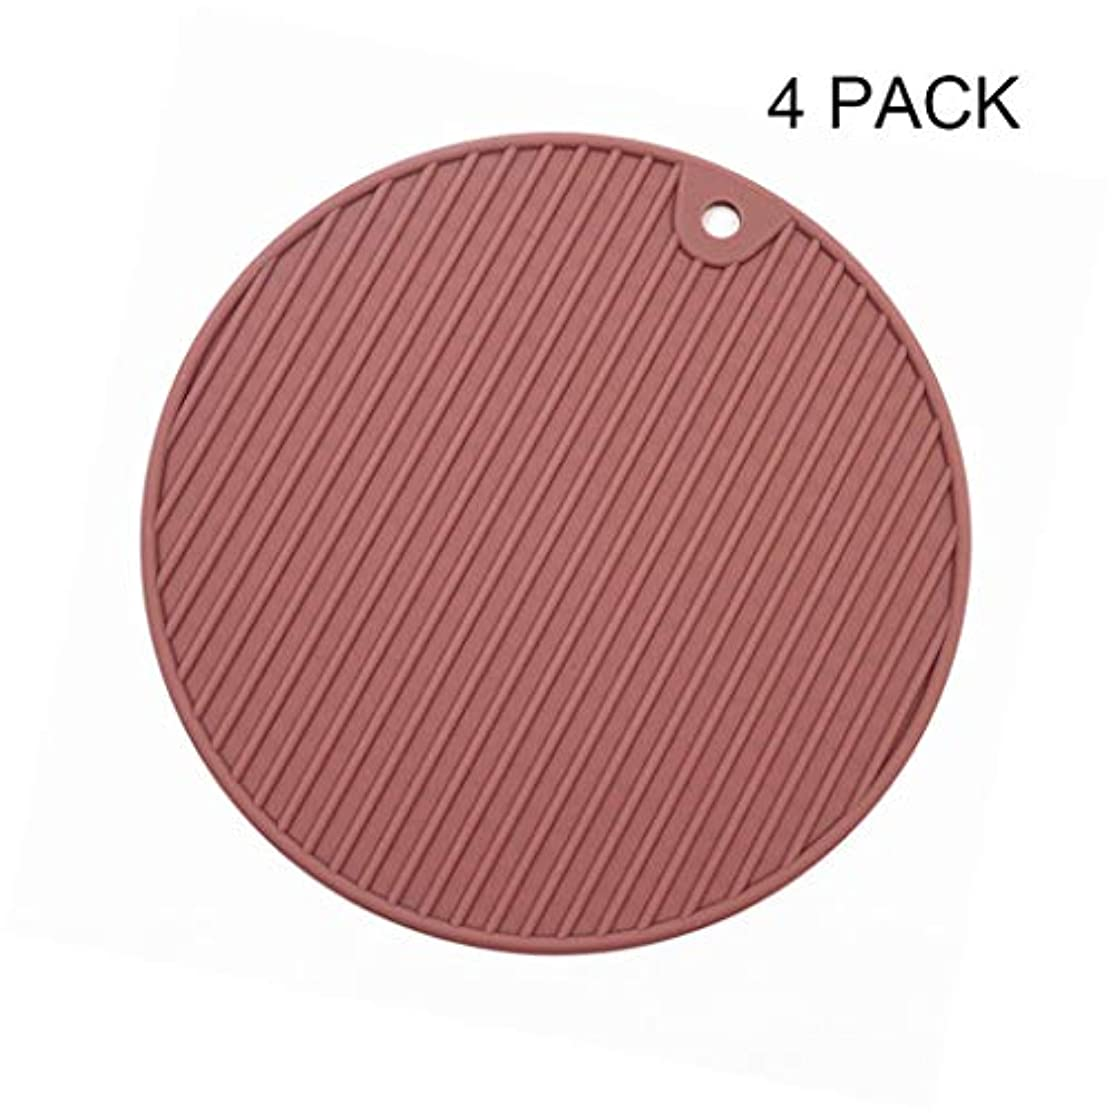 QVIVI Drying Drainer Mat Dish Washer Kitchen Silicone Insulation Pad Anti-hot Non-Slip Table Mat Resistant High Temperature Coaster(Set of 4,Pink)